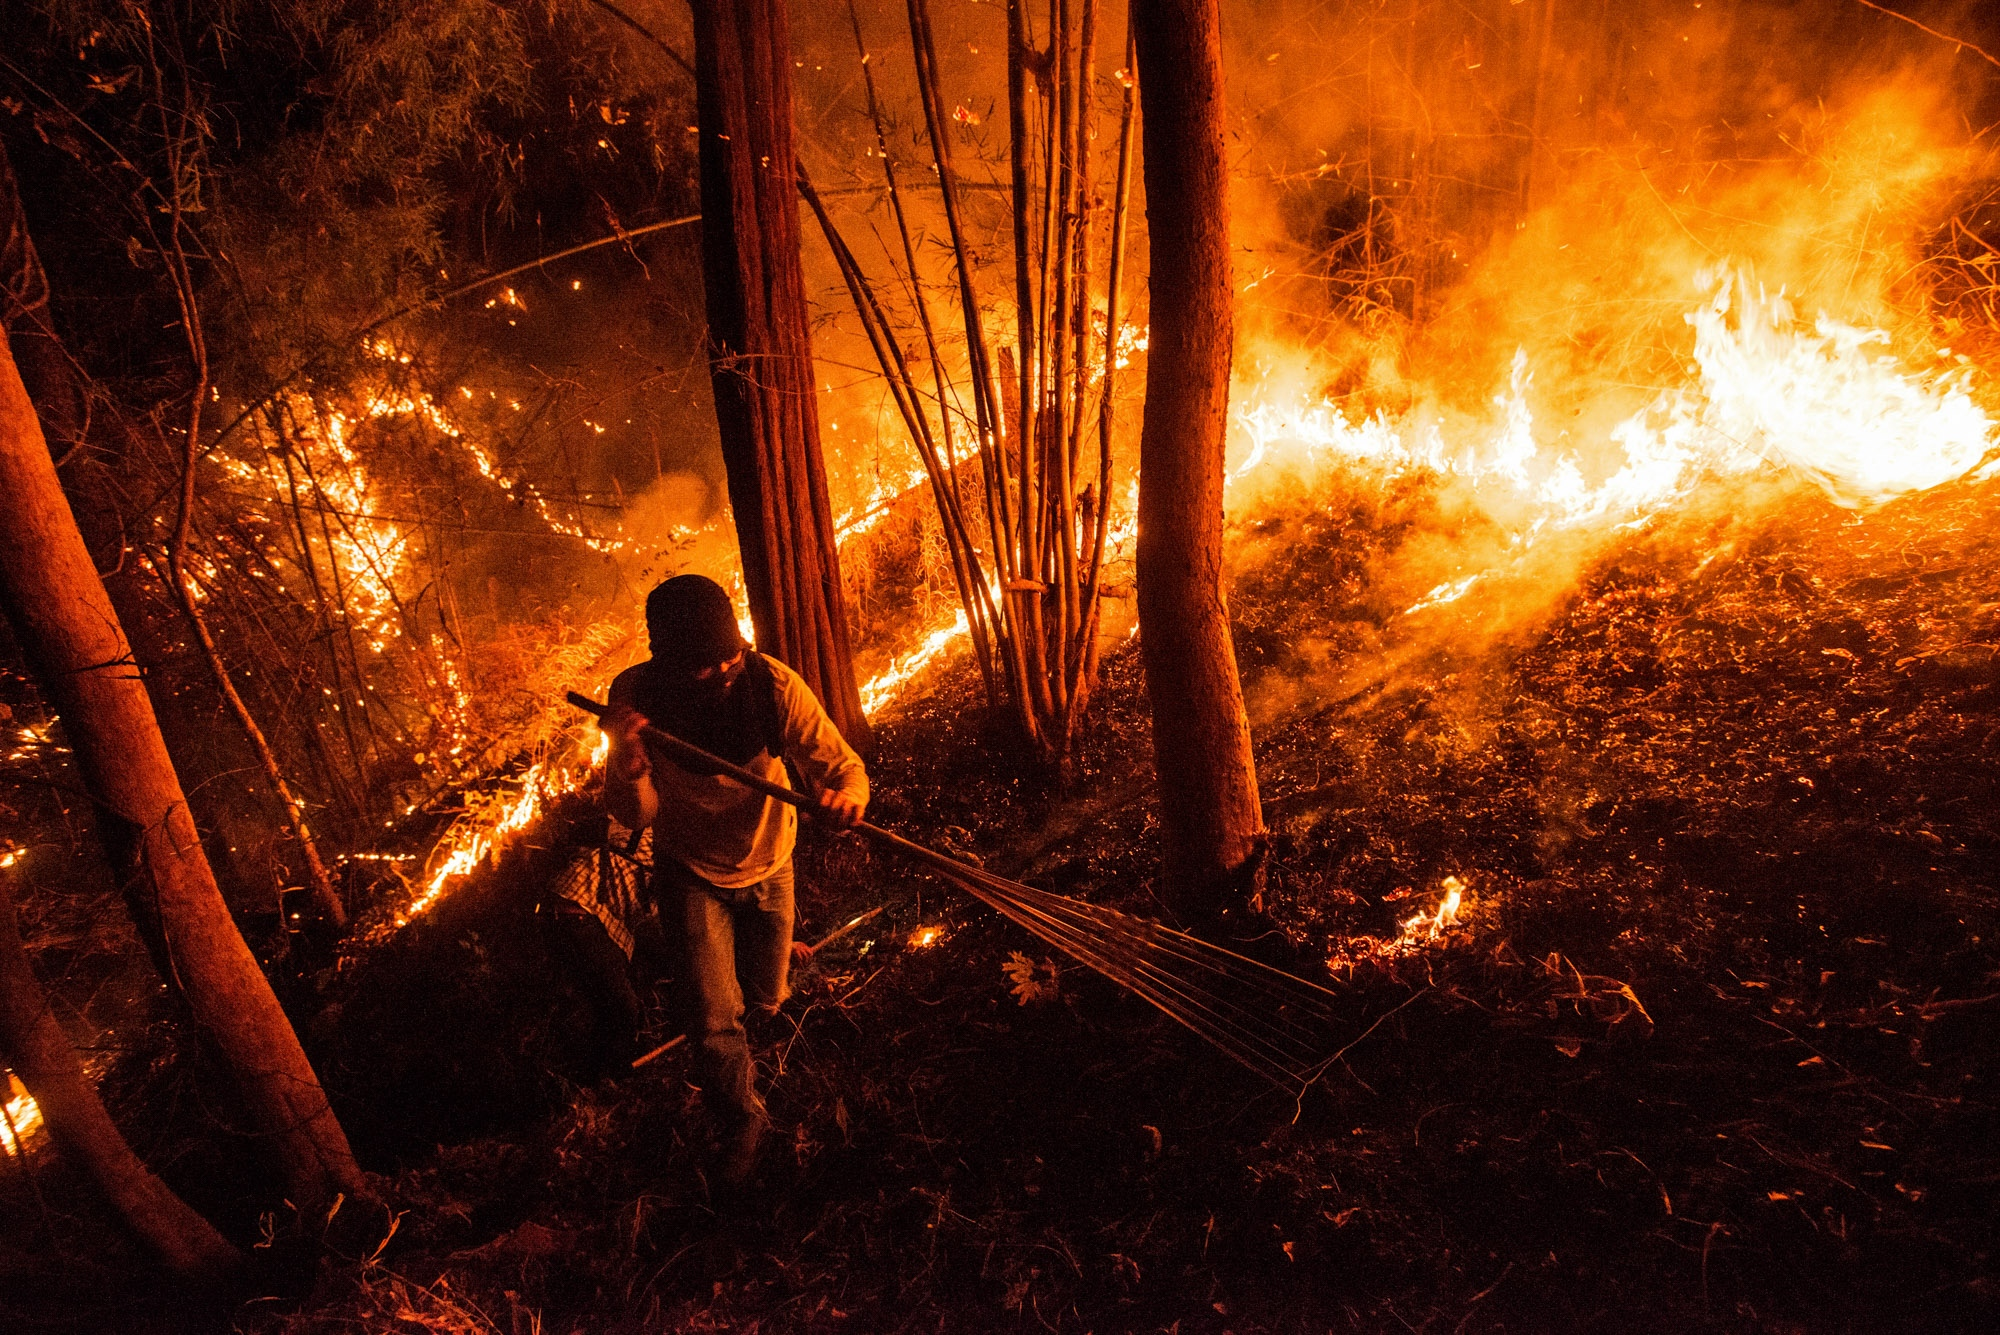 A firefighter hikes through a forest fire to control the spread of fire occurred during the night time by making a firebreak. Most of wildfires (99%) are caused by humans.